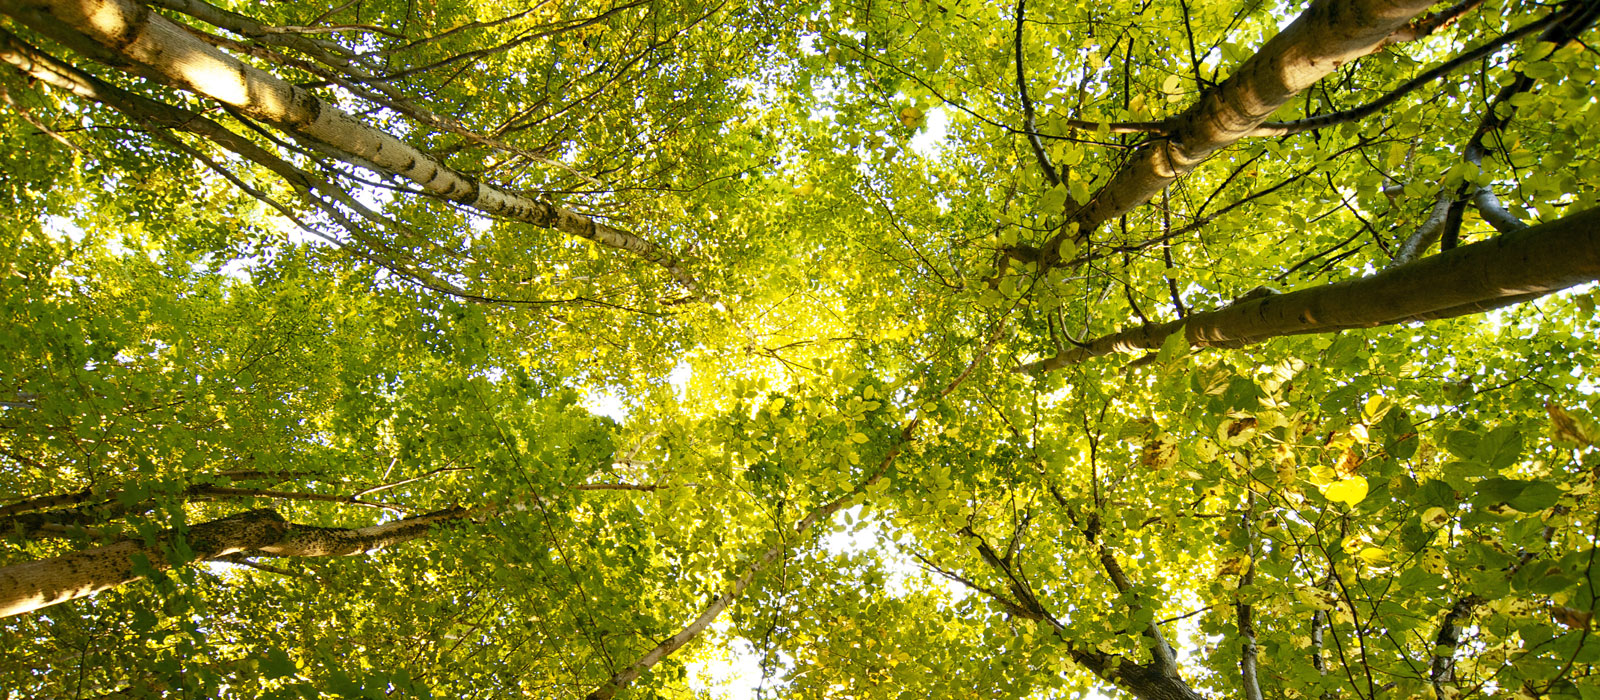 How Can Business Meet Commitments to Zero-Deforestation?